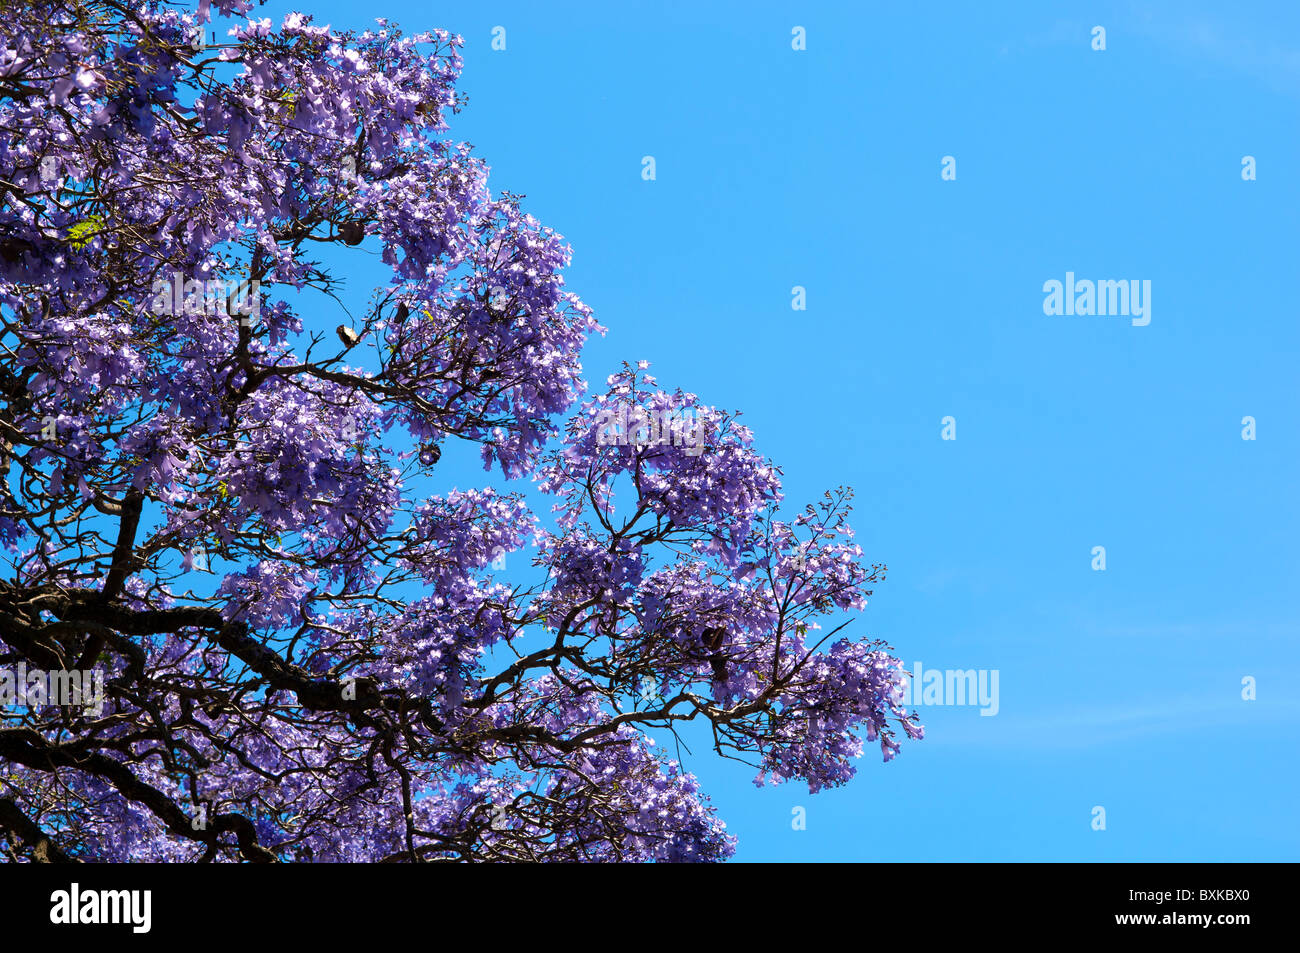 Beautiful Jacaranda trees in full bloom against a blue sky - Stock Image